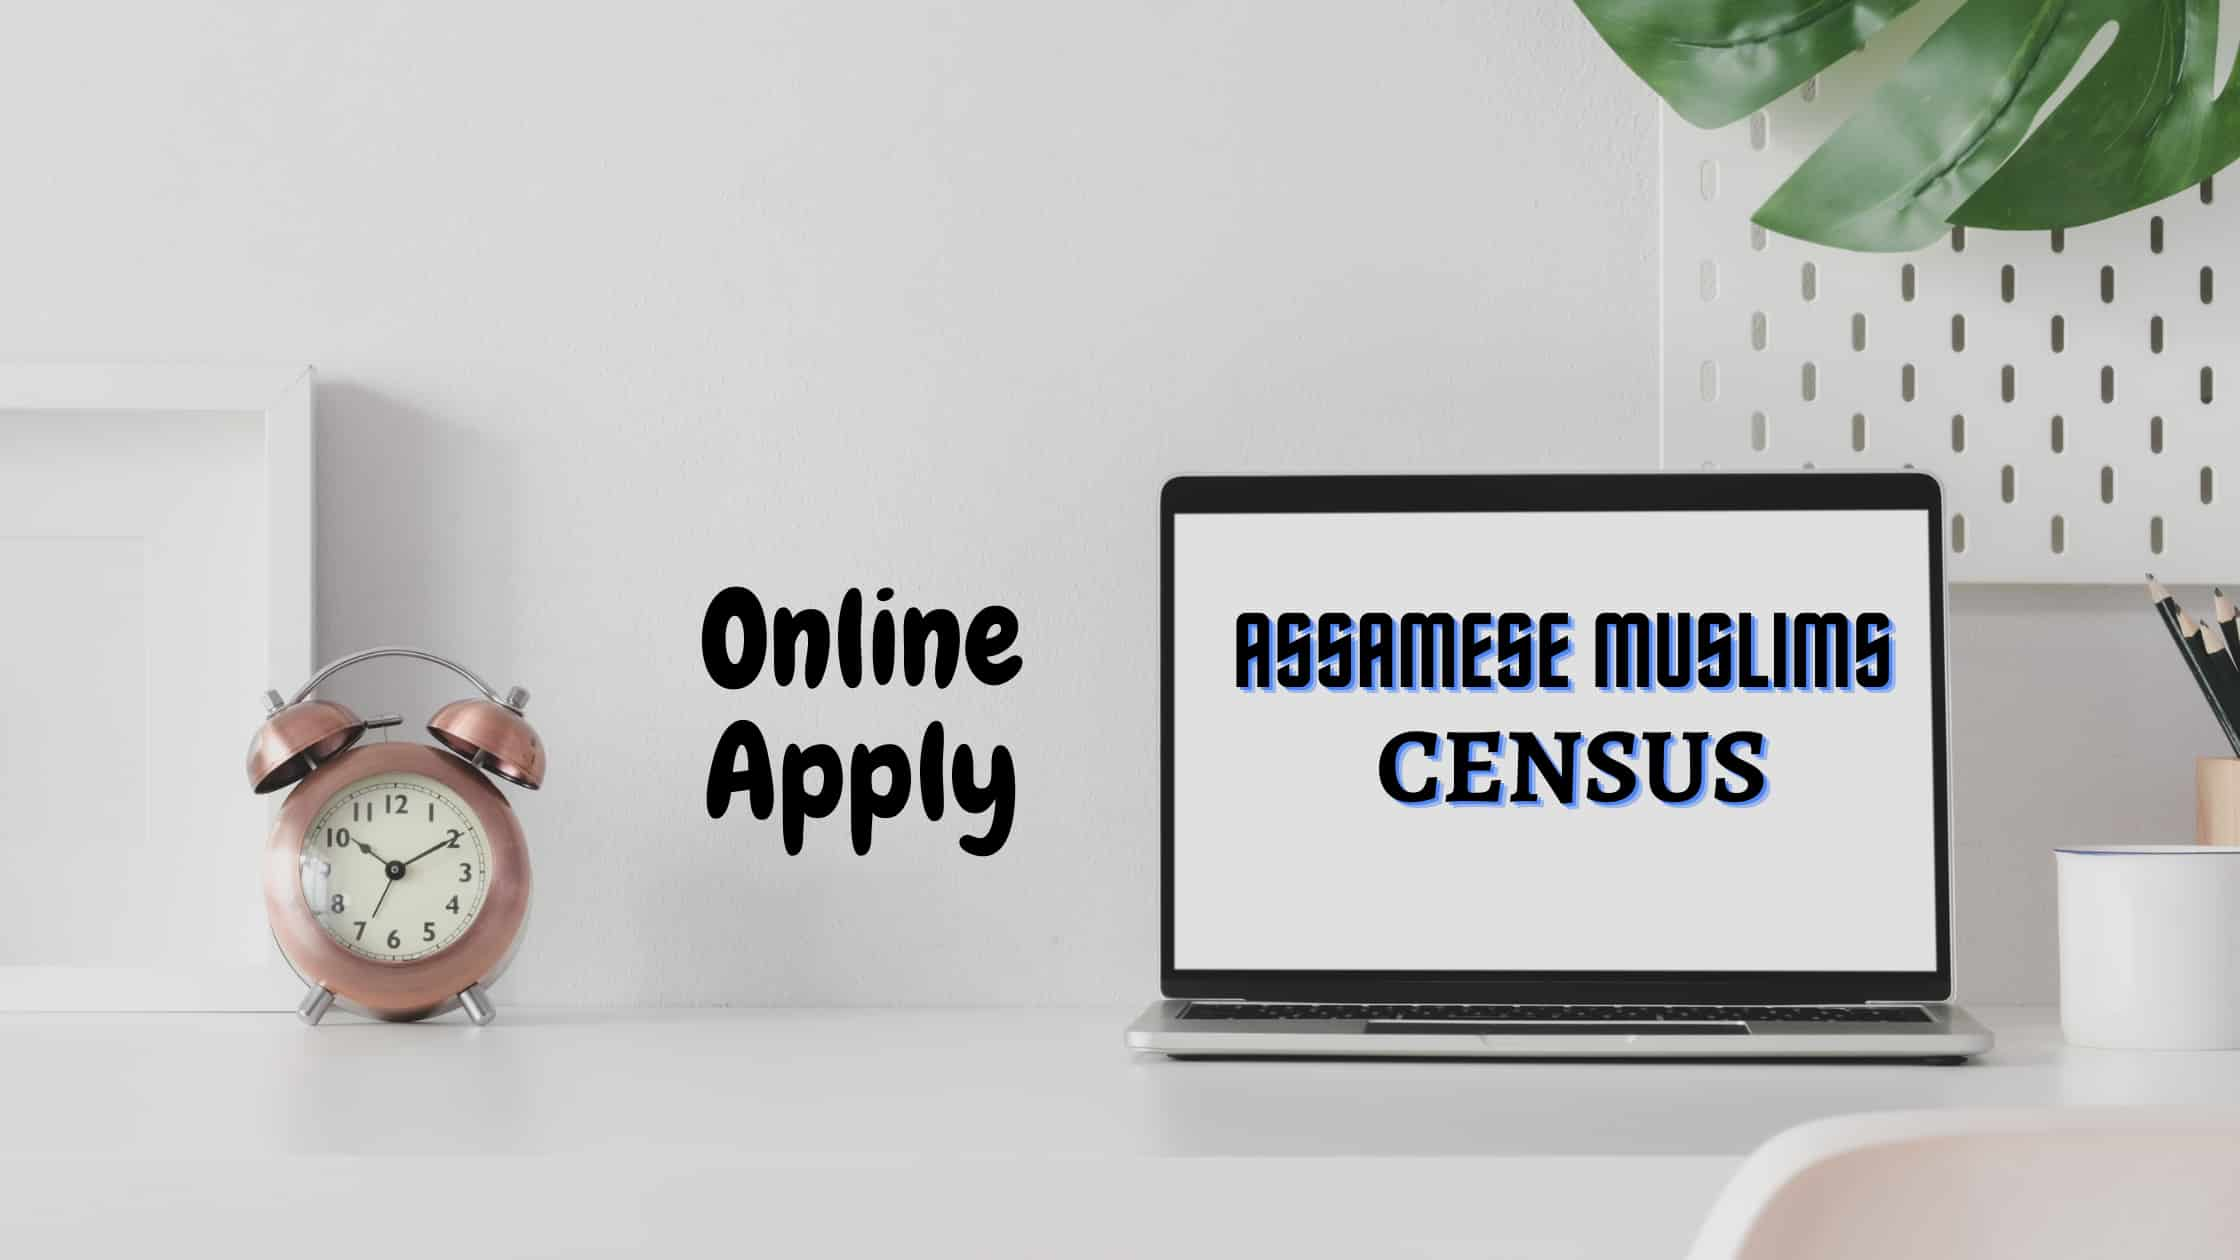 Assamese Muslims Census online apply